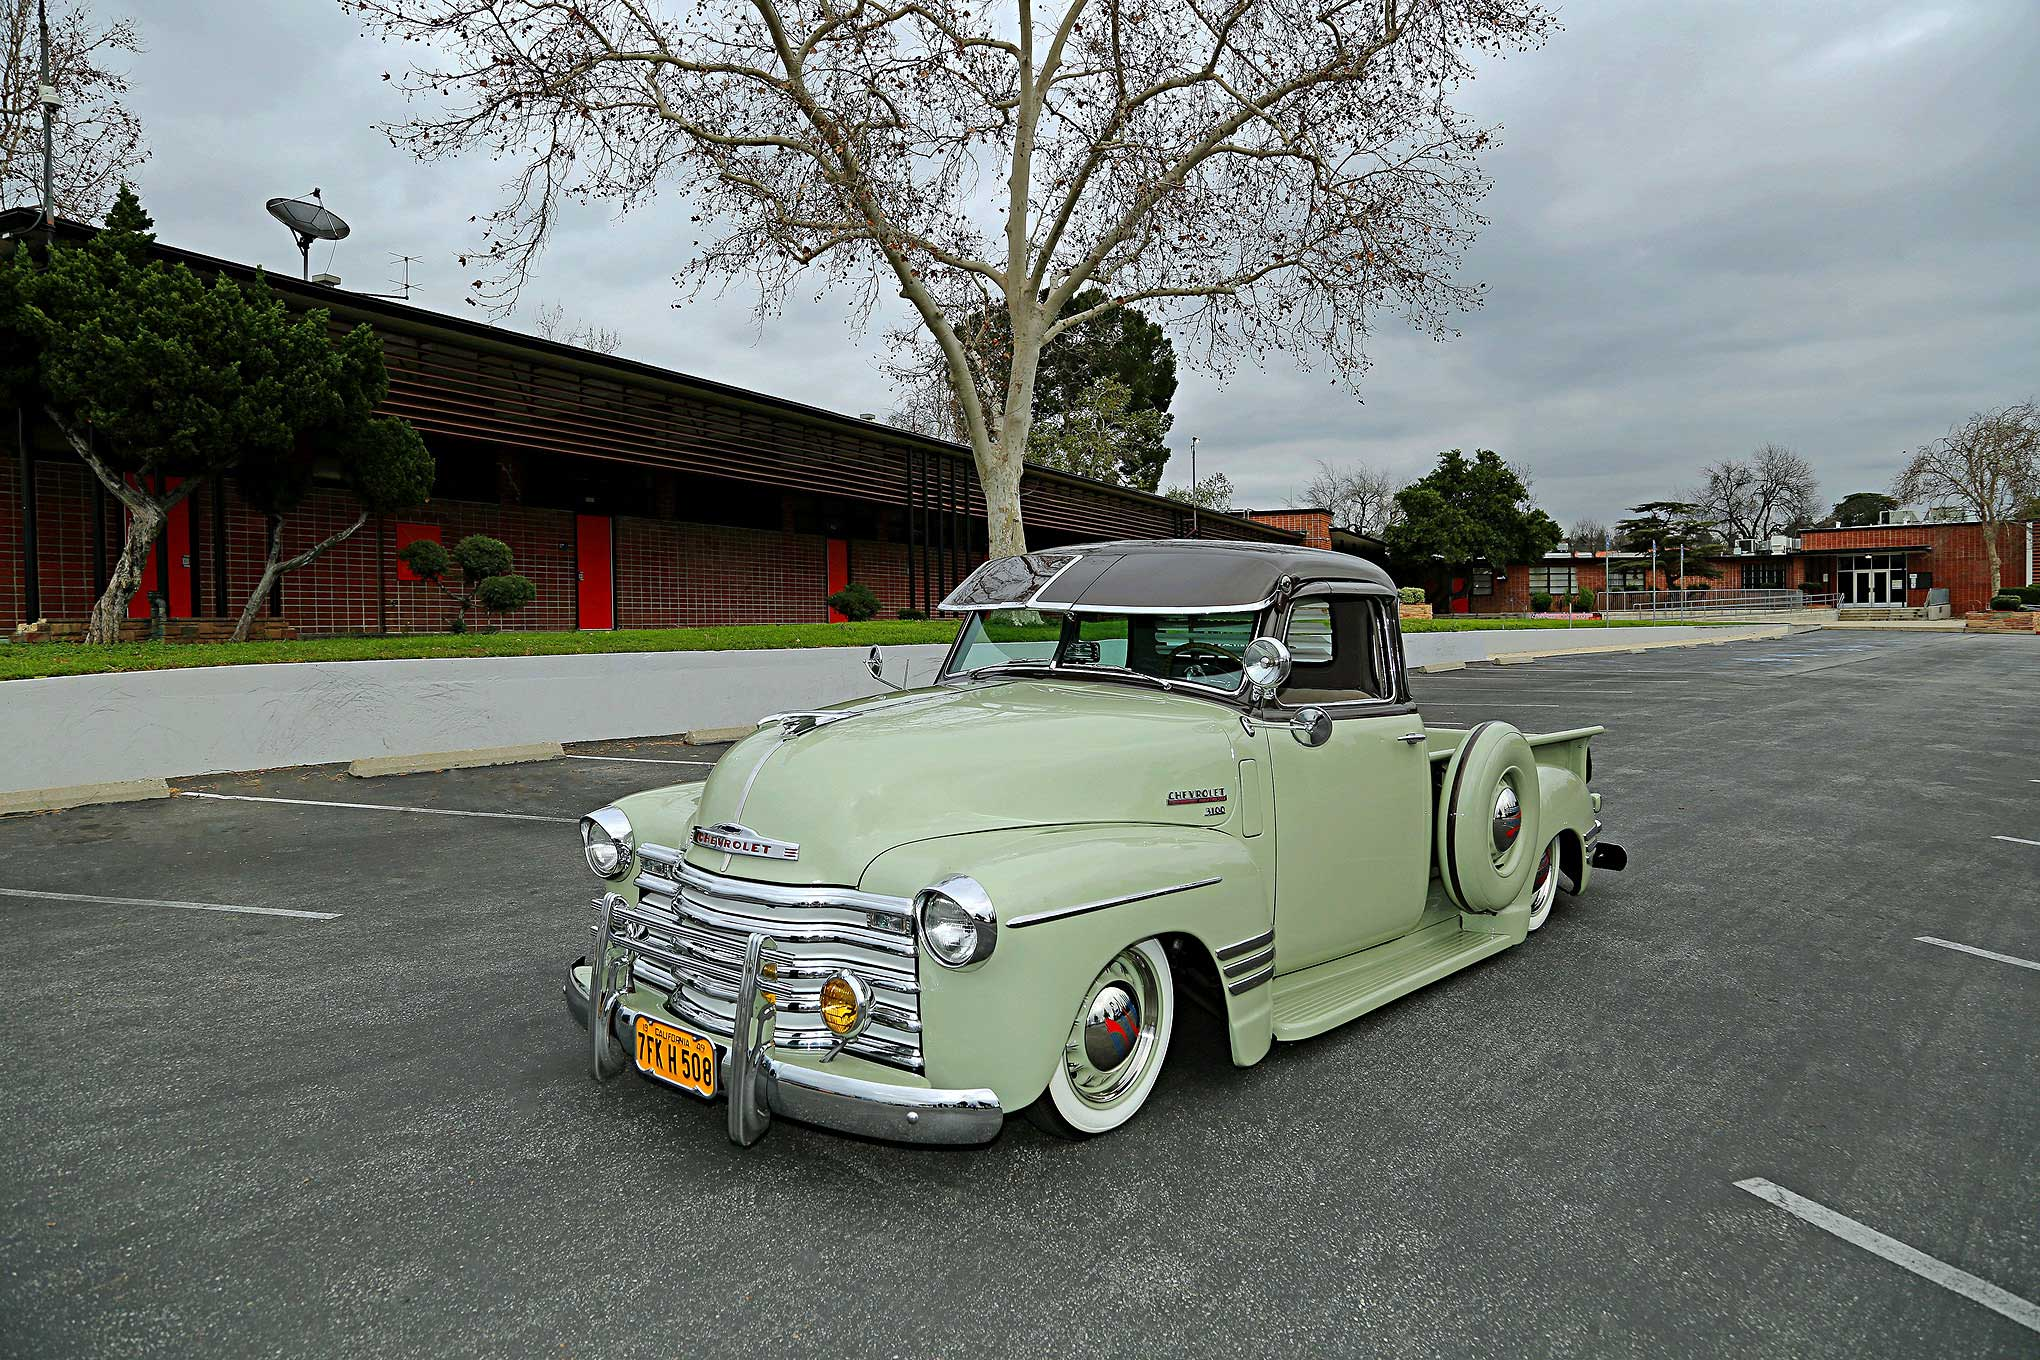 1949 Chevrolet 3100 The Sgv Stepside Chevy Truck 29 32